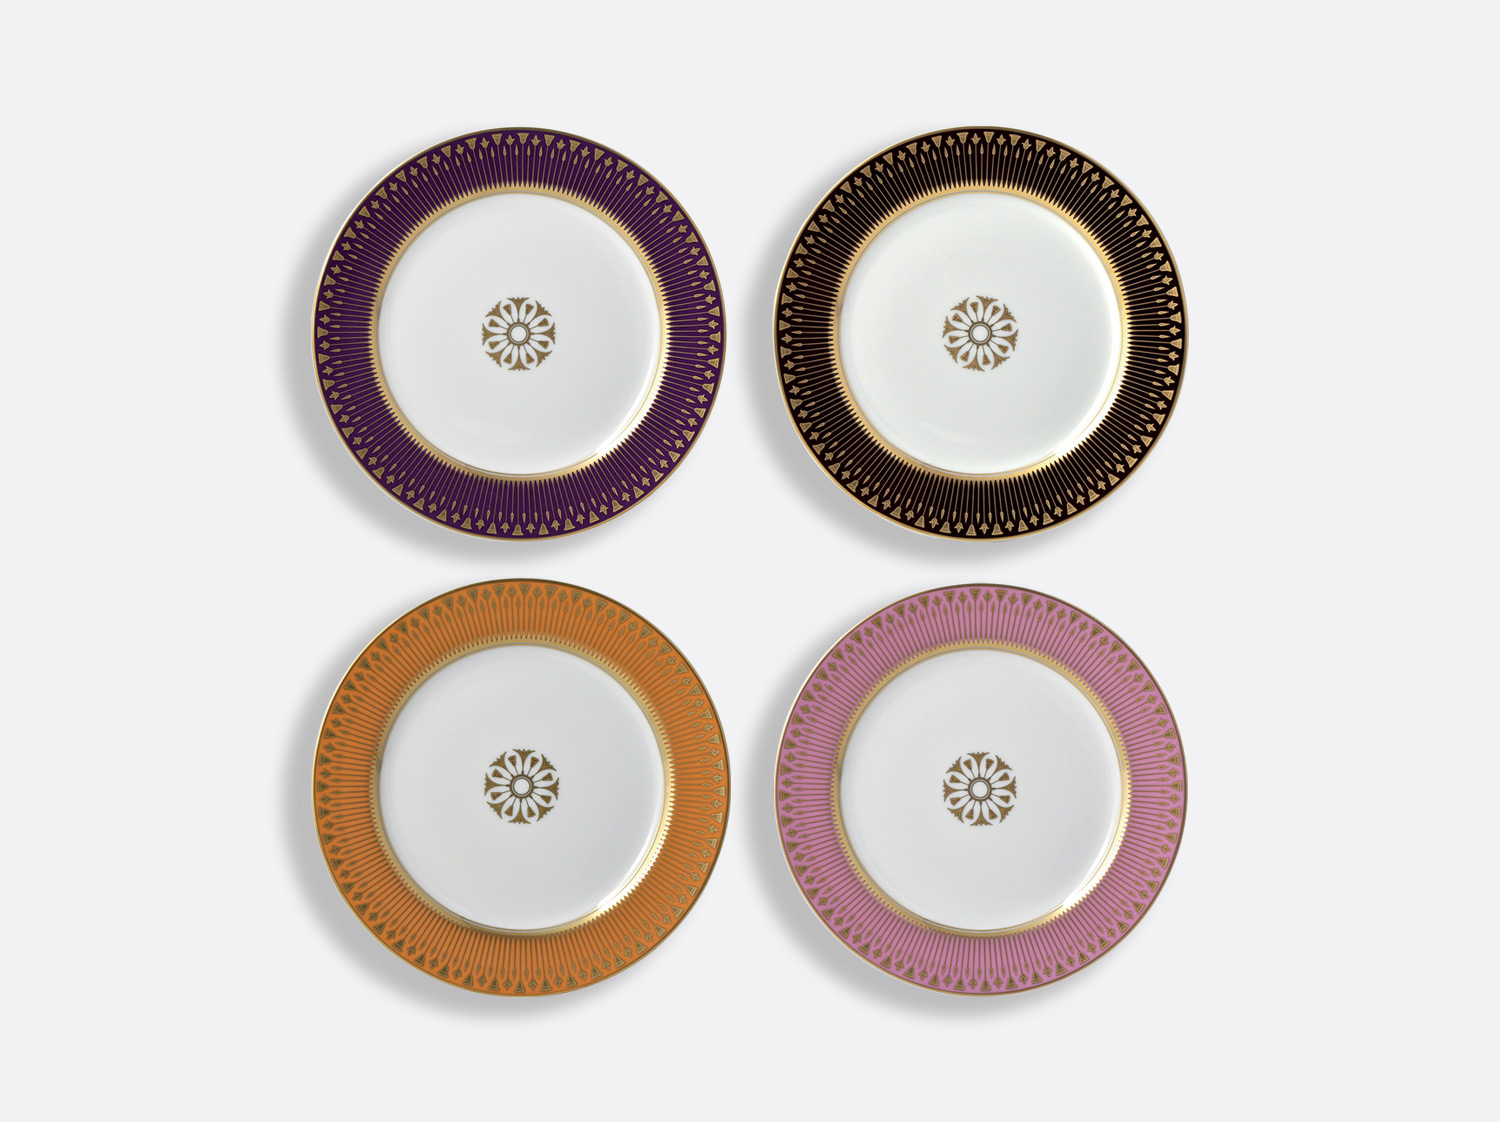 Coffret de 4 assiettes à dessert 21 cm en porcelaine de la collection Soleil levant couleurs Bernardaud